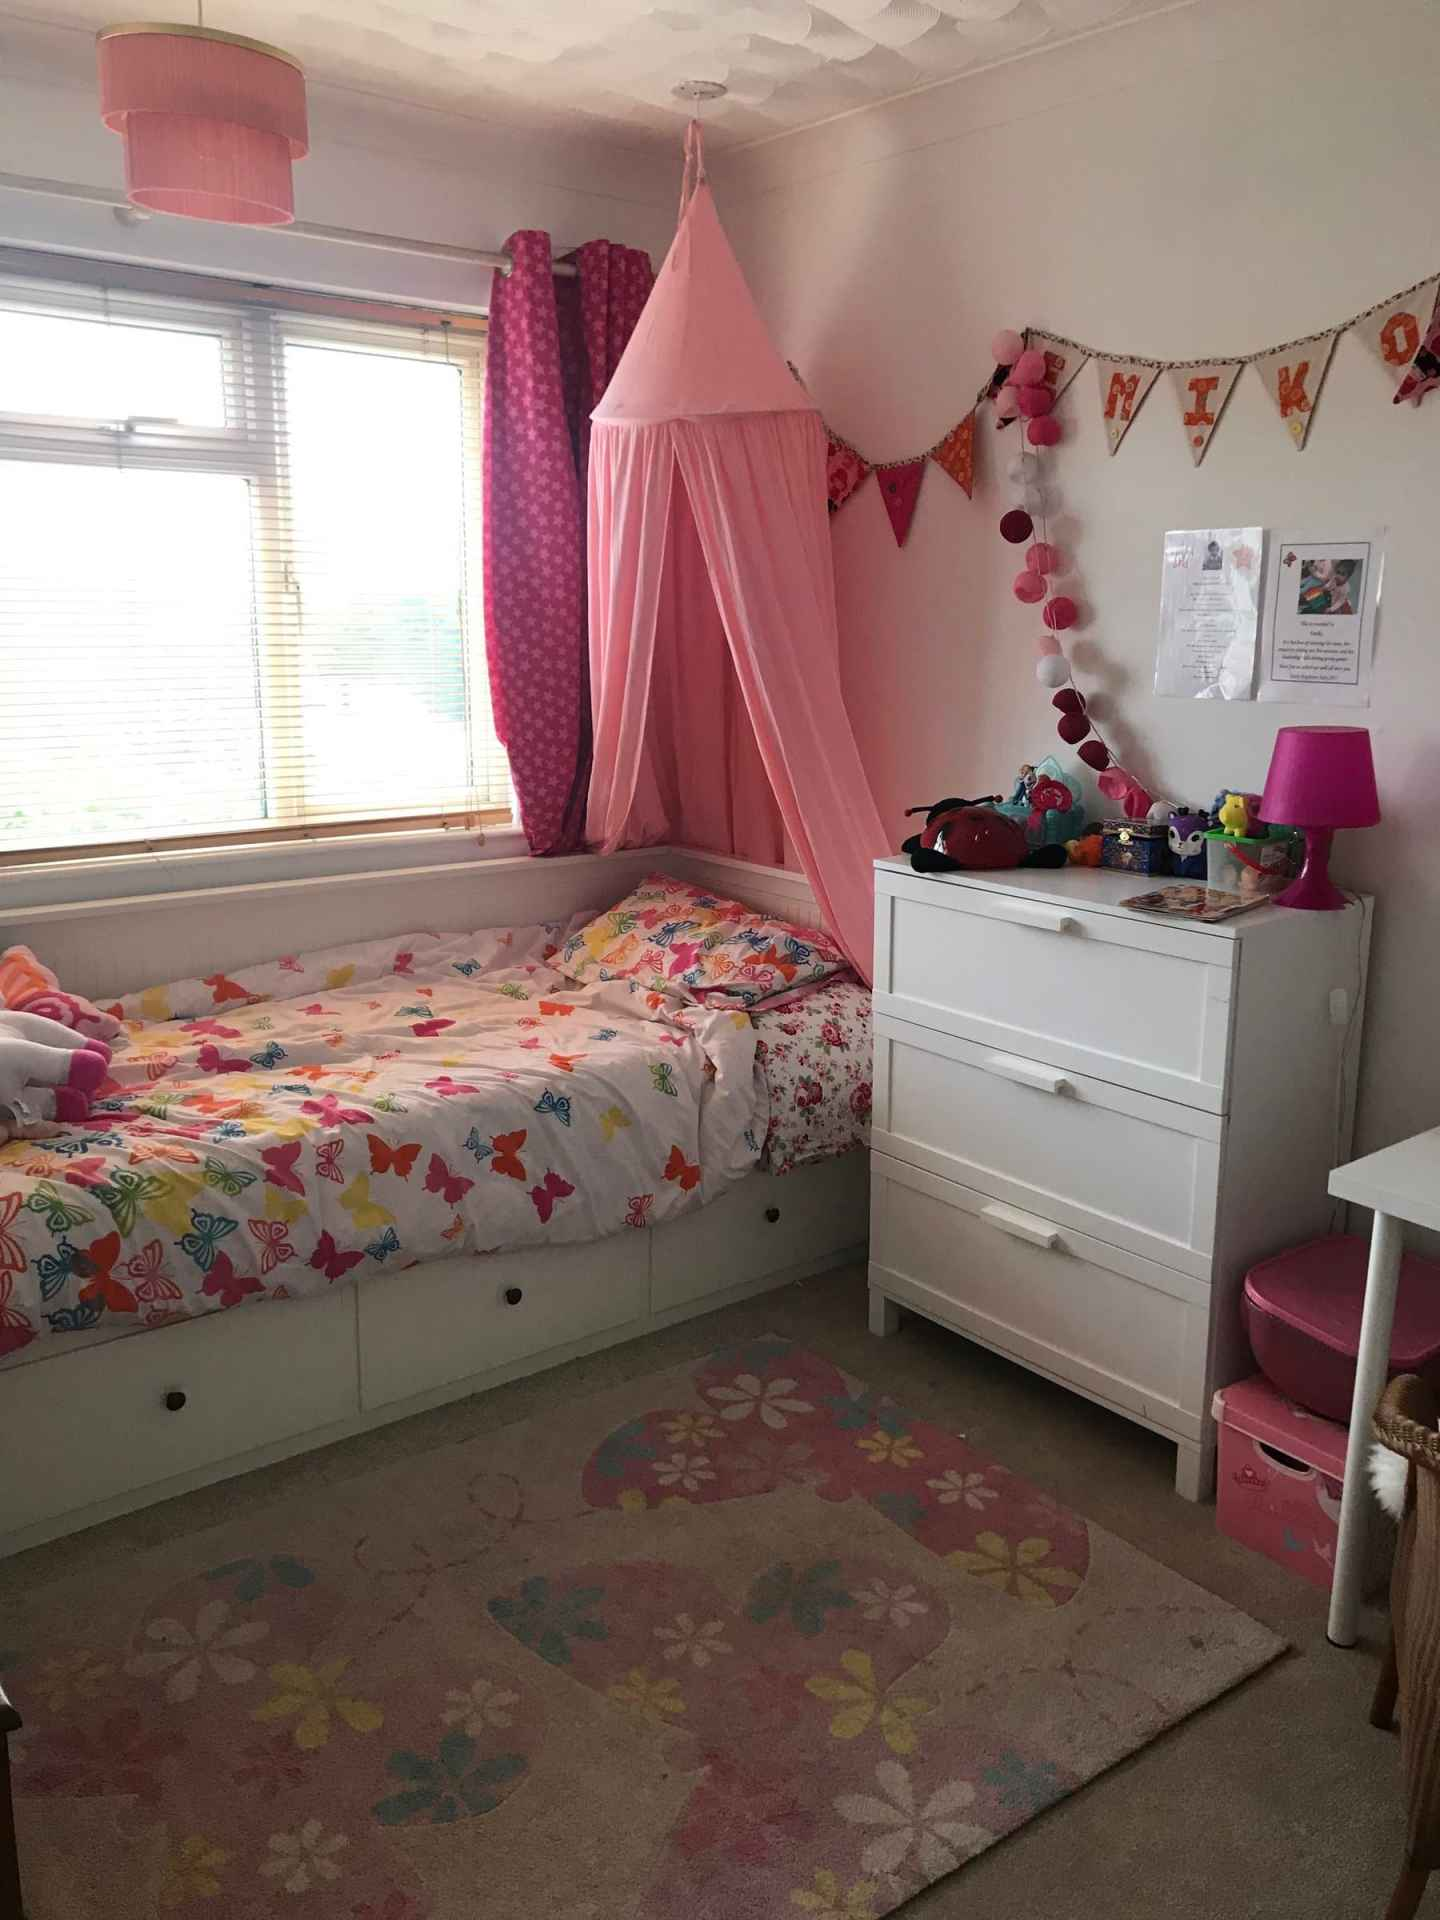 My daughter's bedroom before the revamp - complete with Ikea Day Bed and mattress